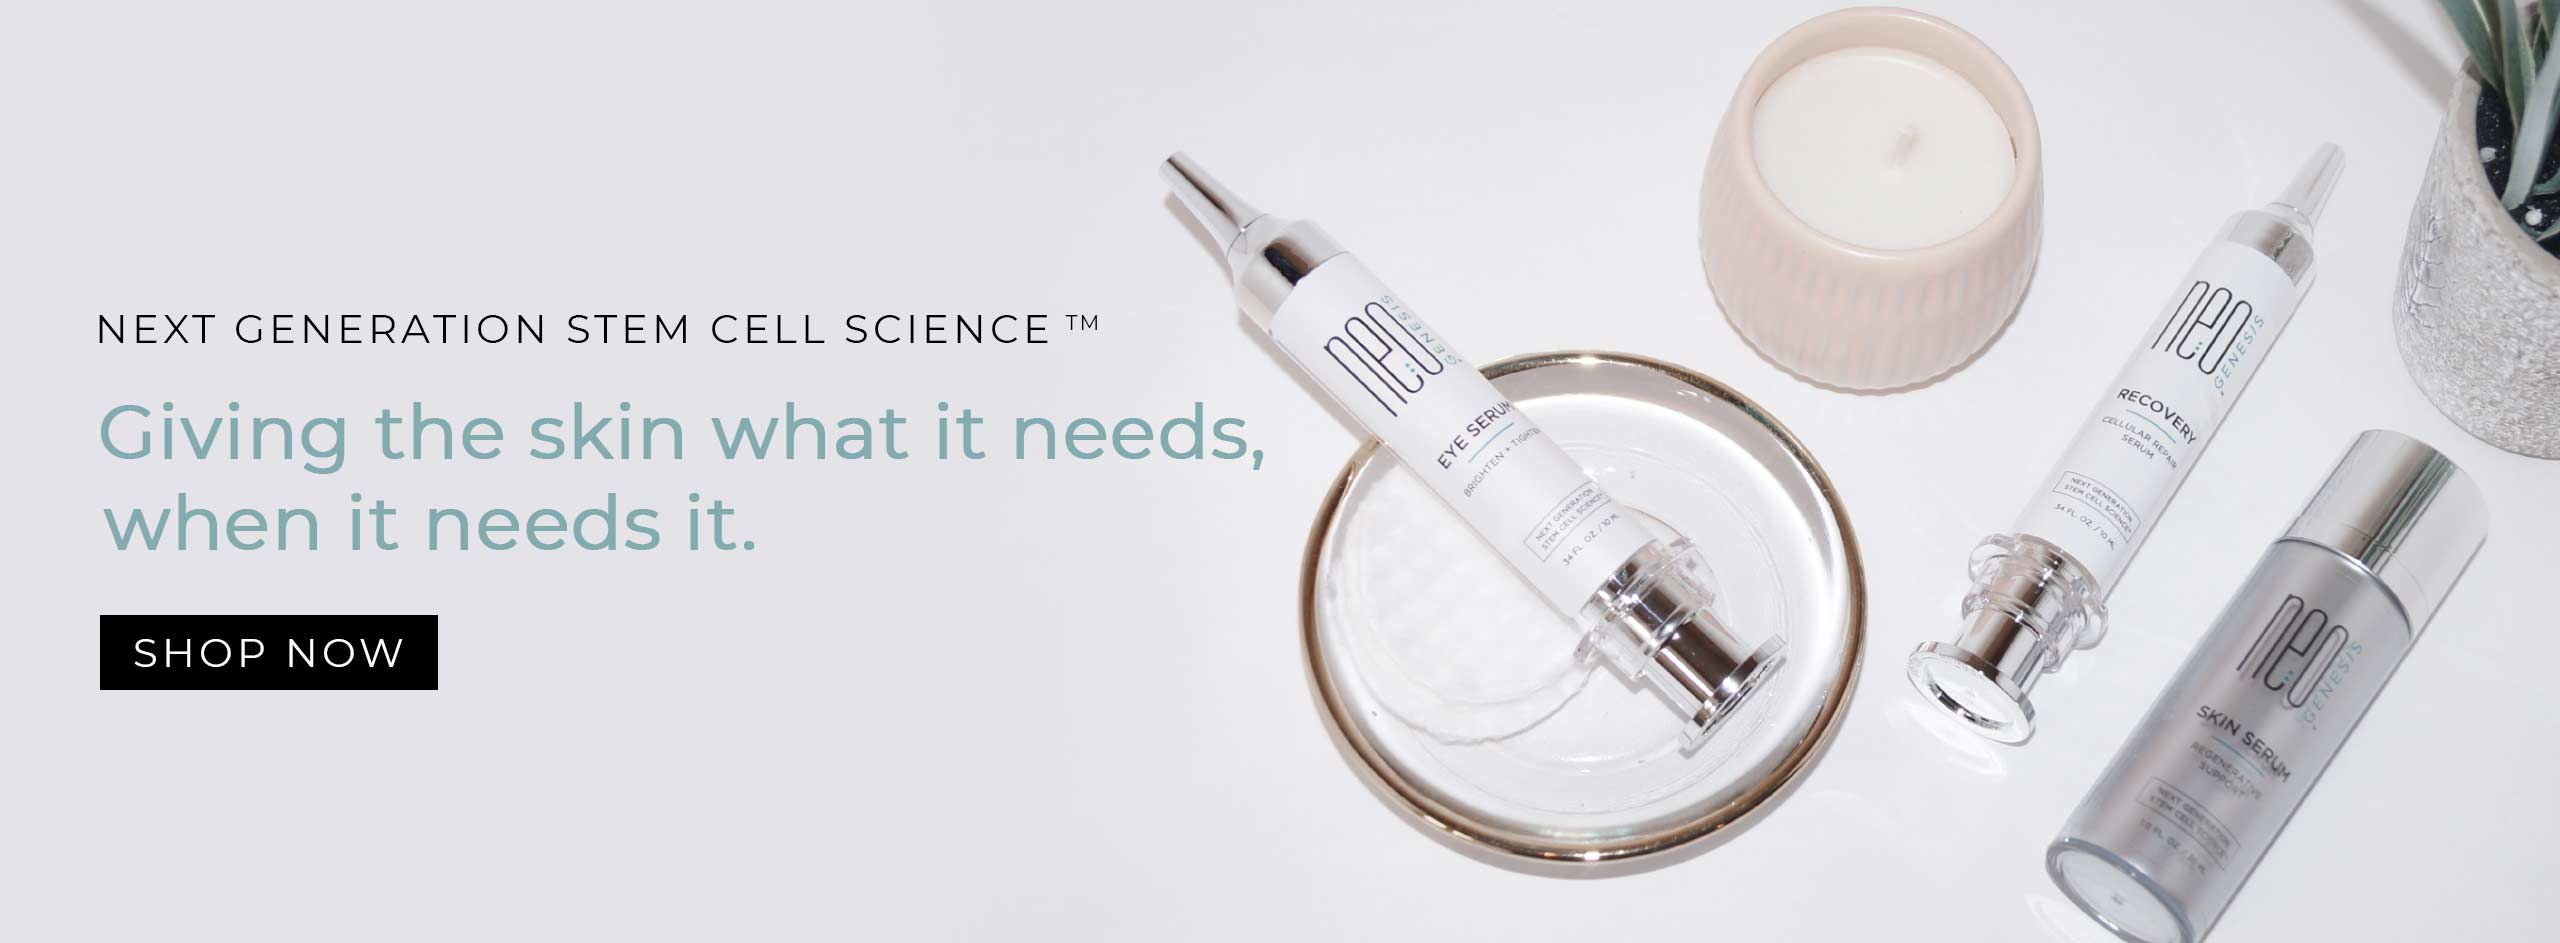 NeoGenesis Skin Care Products